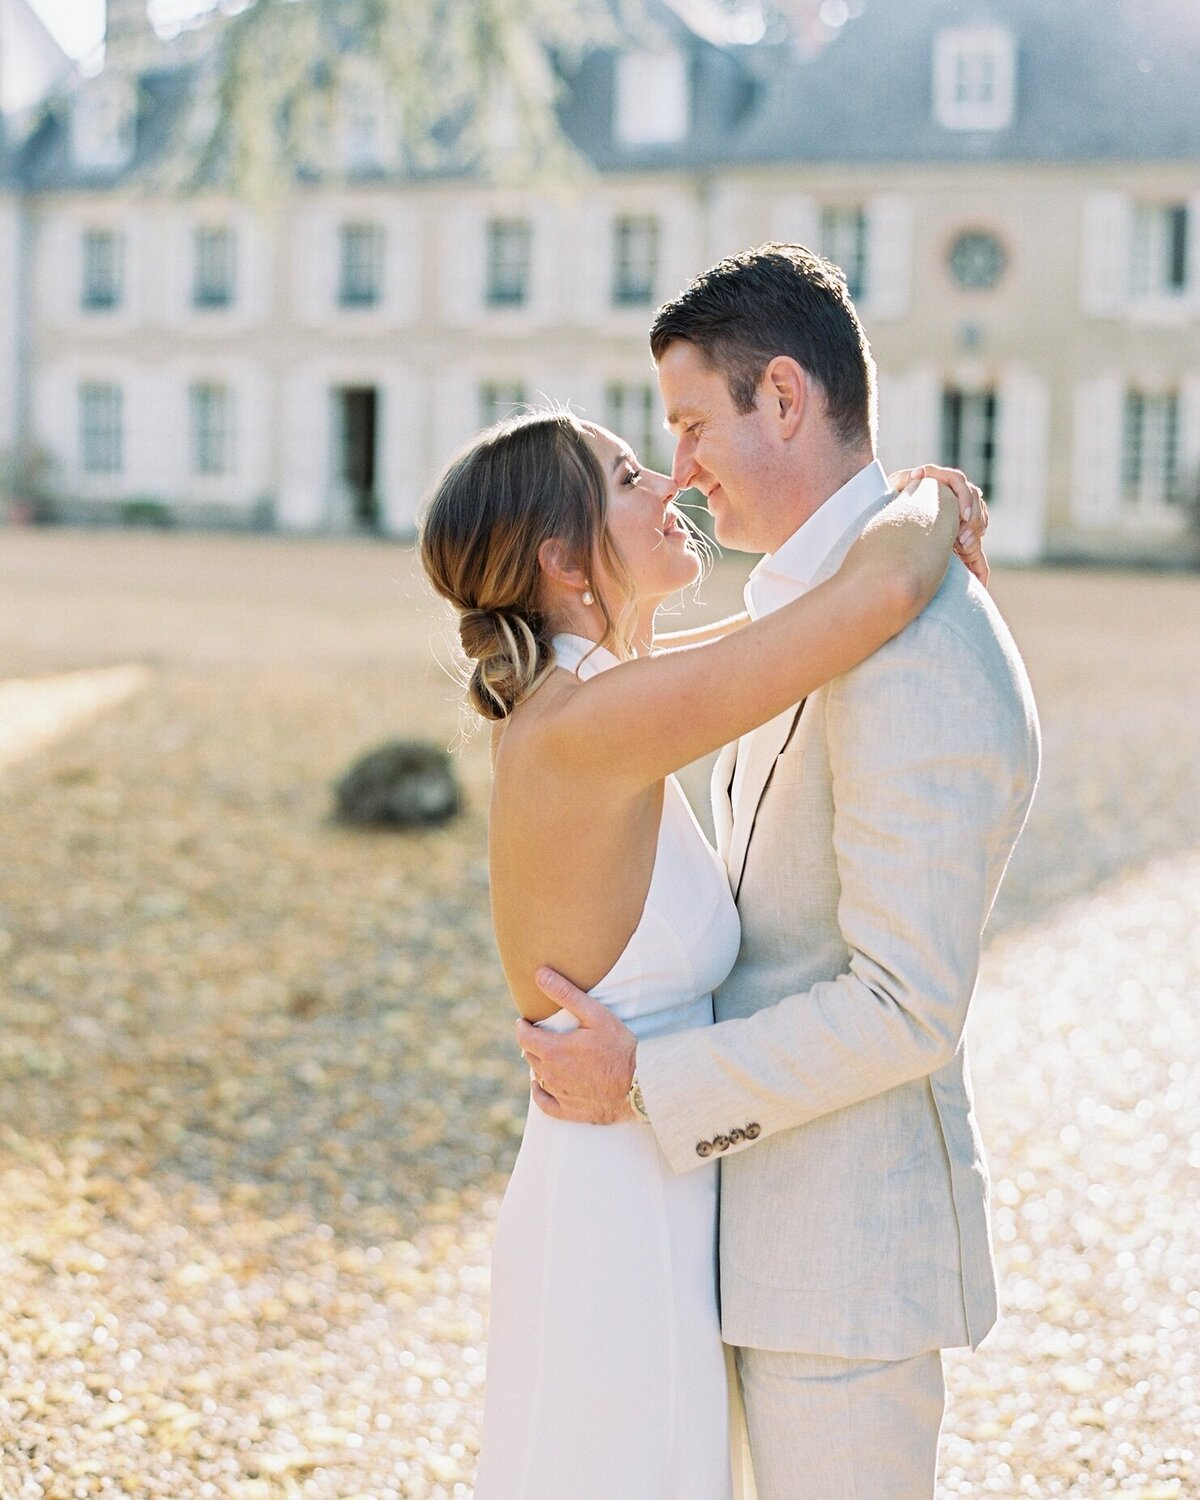 Trine_Juel_hair_and_makeupartist_wedding_Chateau_de_Bouthonvilliersge0